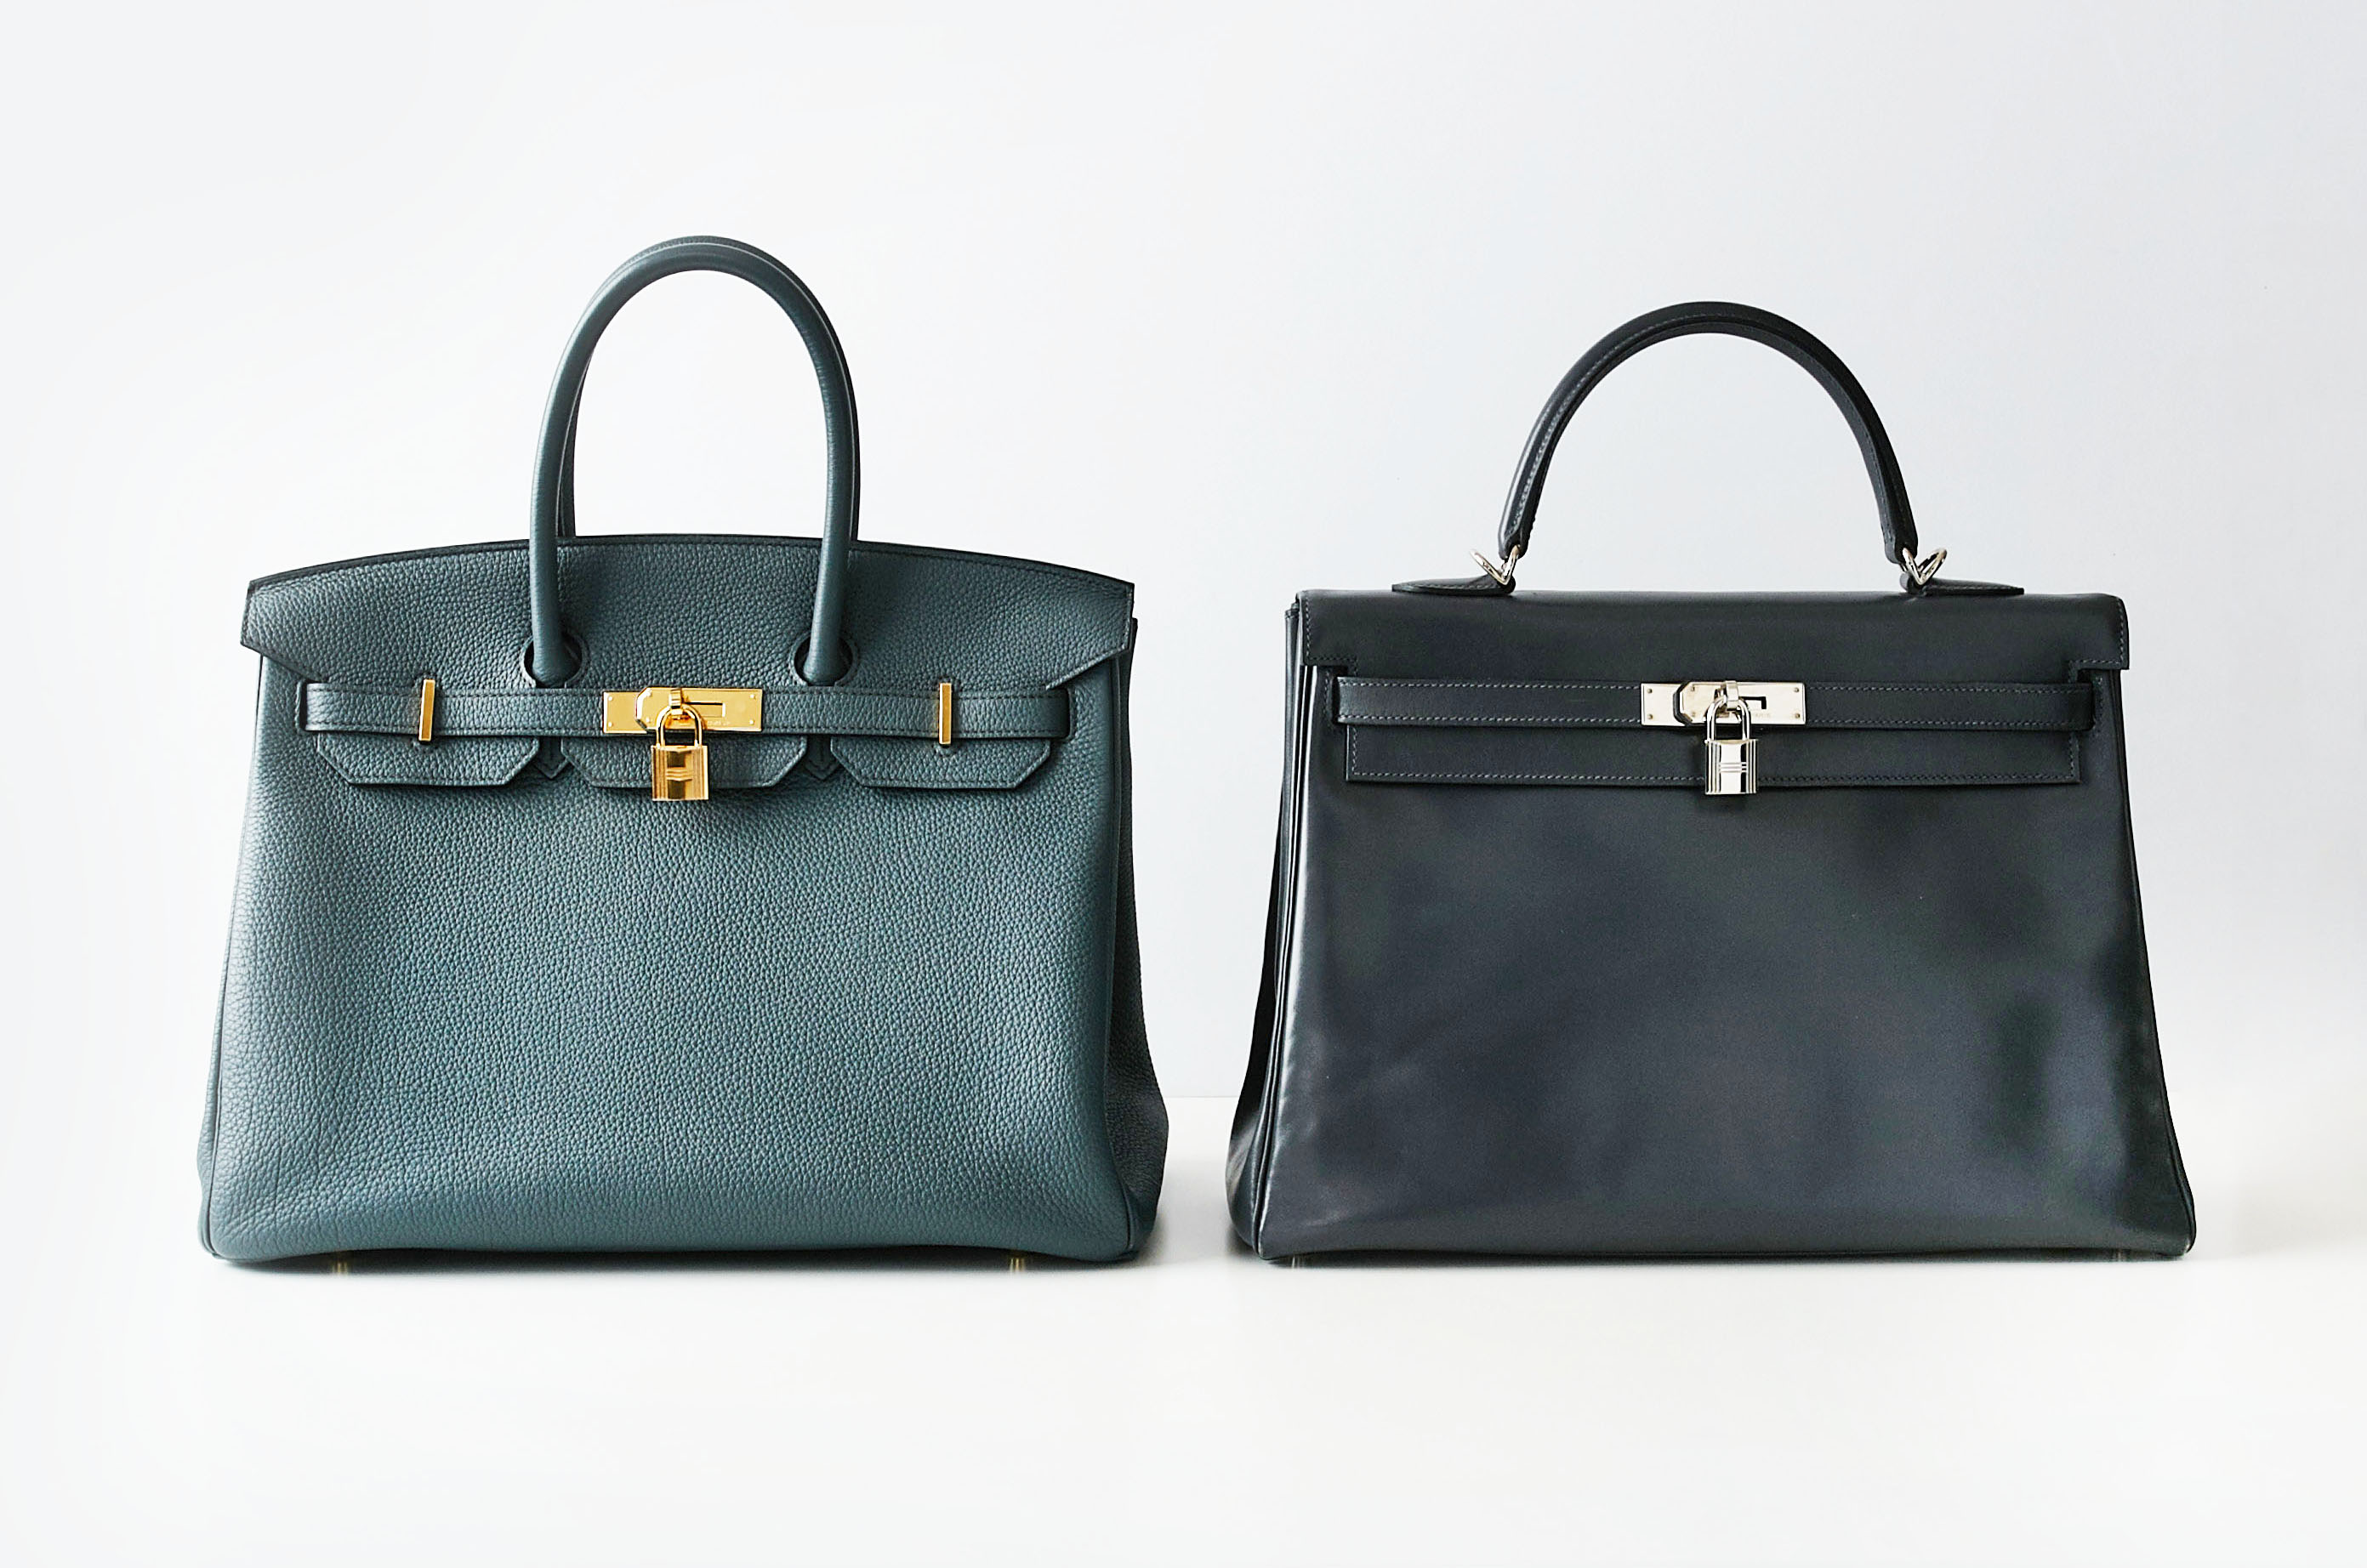 Bags Hermes collection birkin and kelly bag fotos